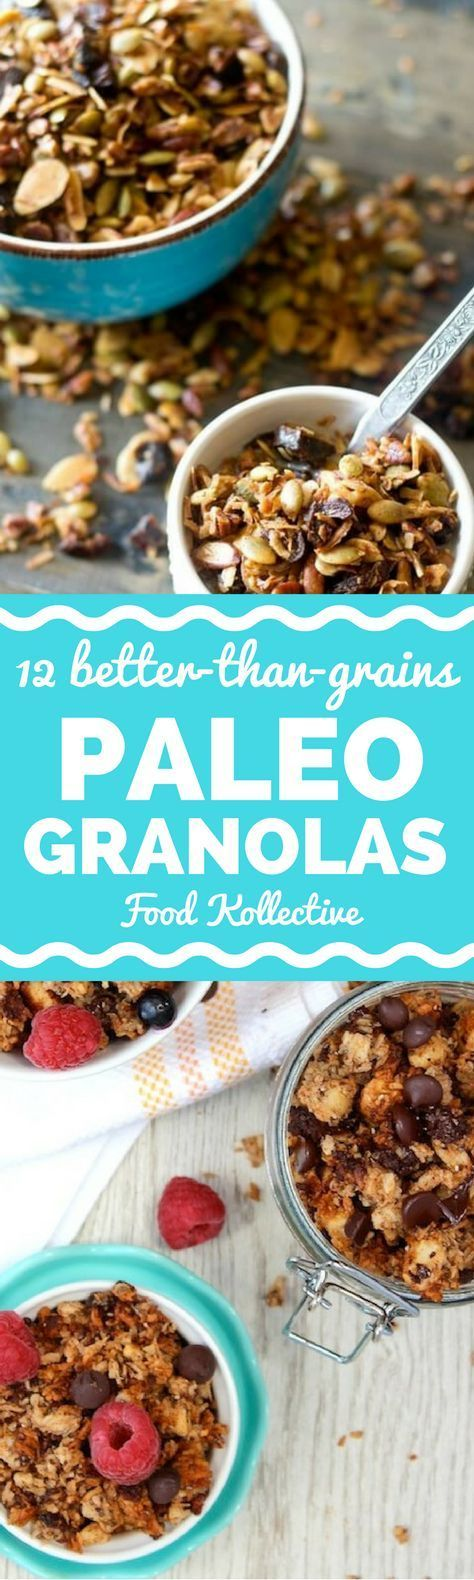 I was looking for Paleo granola recipes and these look delicious! They are filled with nuts and other healthy ingredients. There are recipes for grain free granola, coconut granola, chocolate granola, and more. They would be perfect for a quick and easy Paleo breakfast. Collected on http://FoodKollective.com